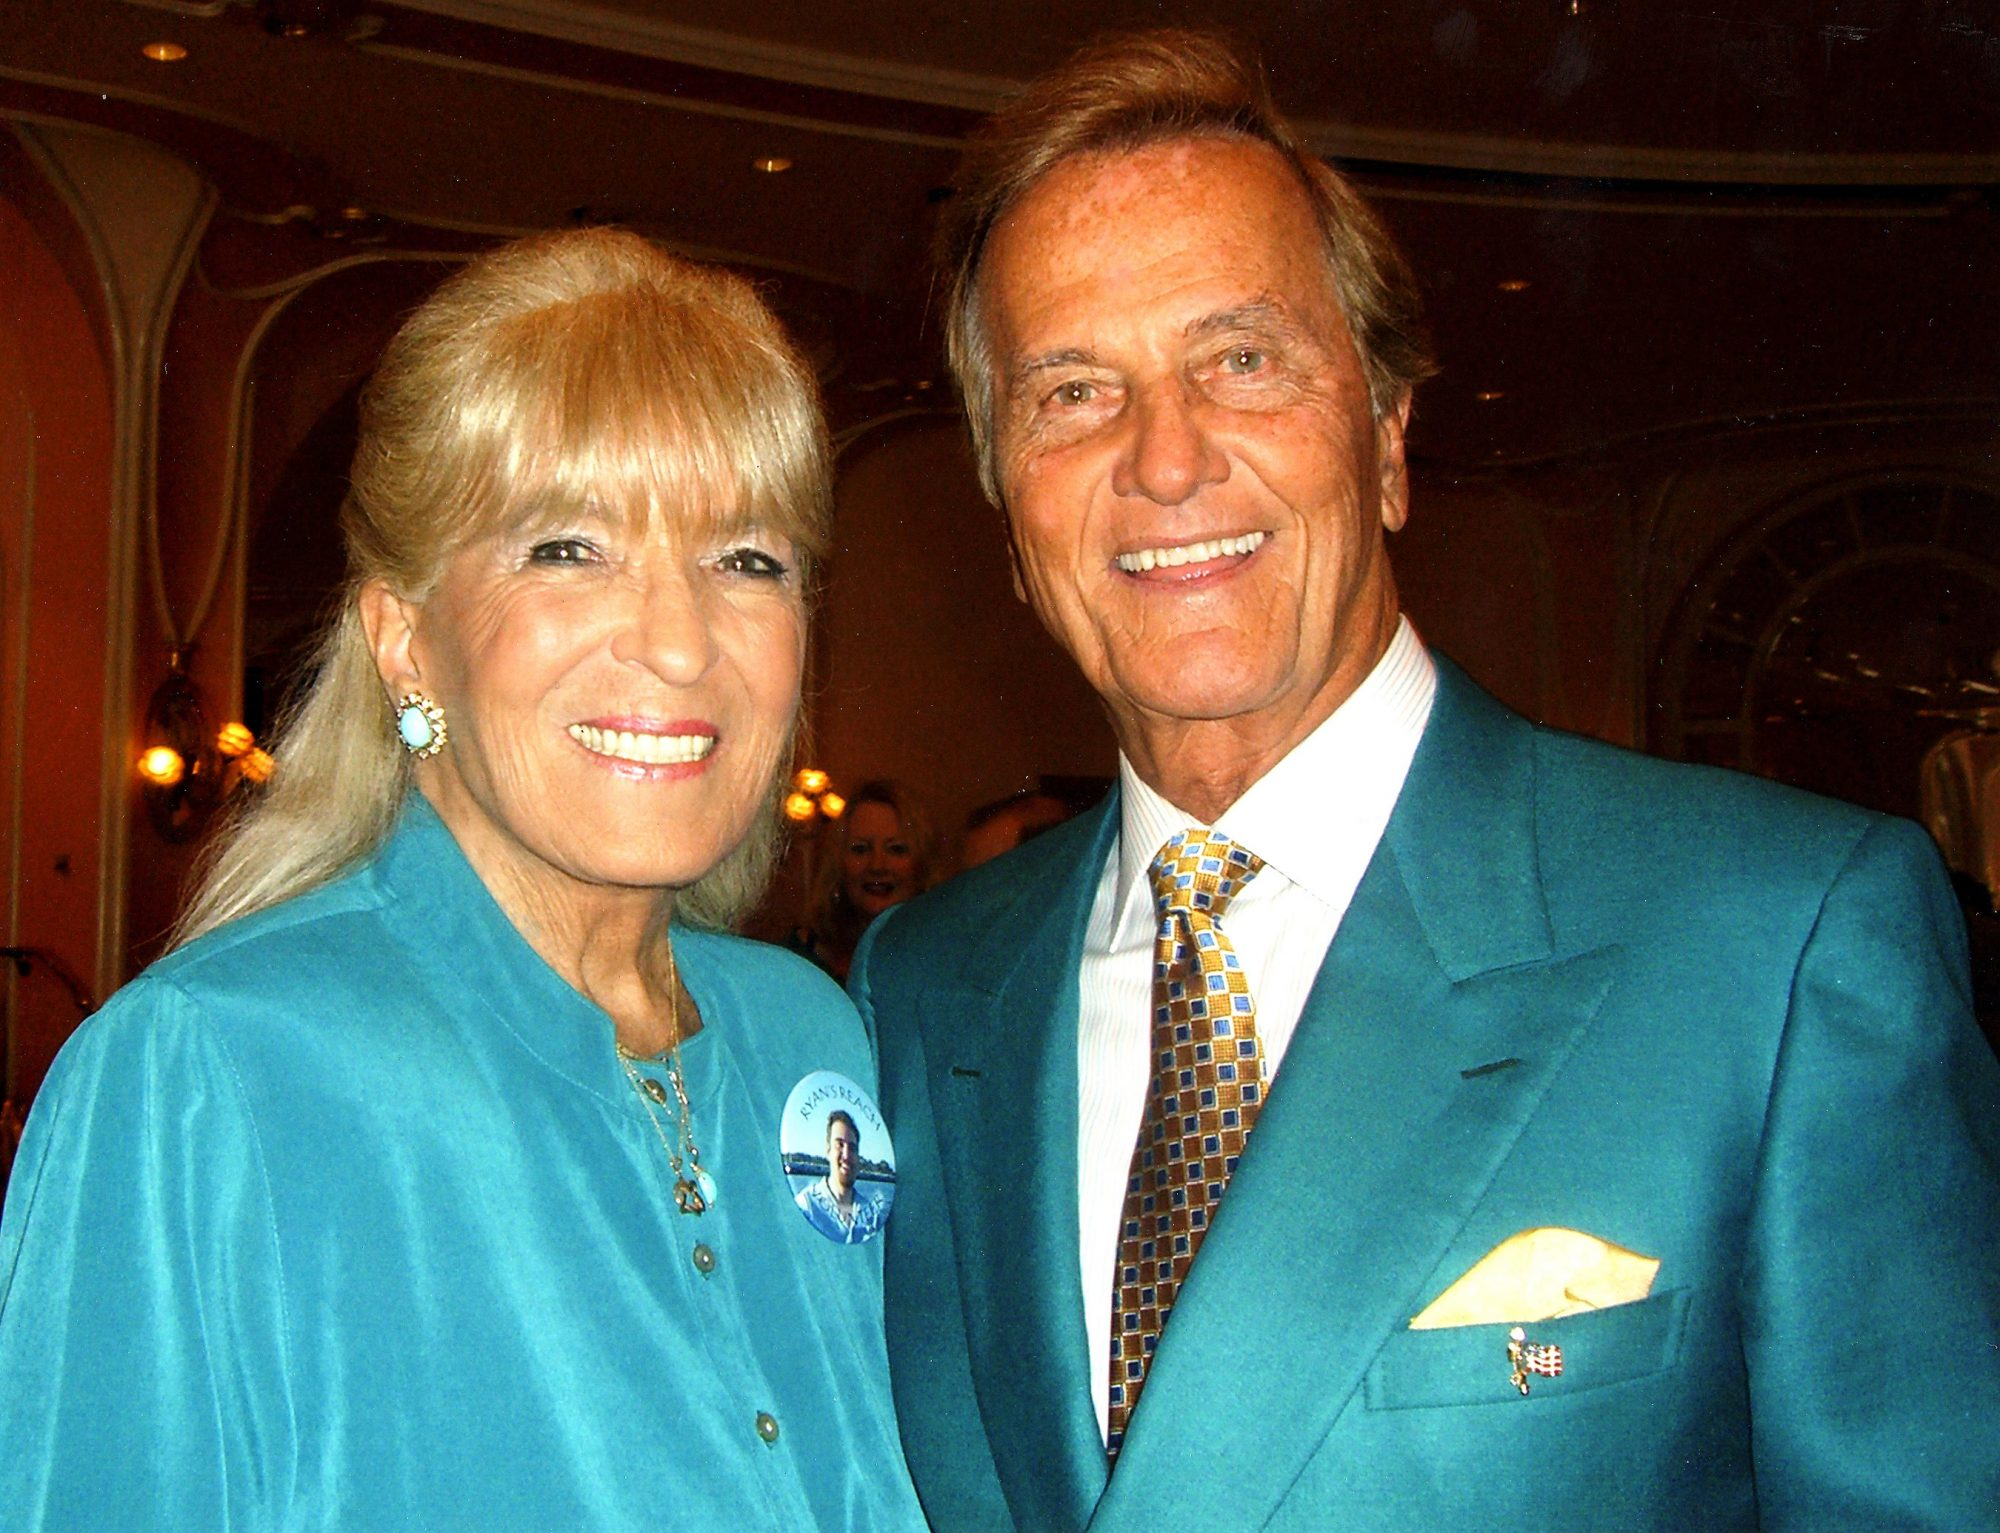 Pat Boone's Wife of 65 Years, Shirley, Dies: 'I've Parted with My Better Half for a Little While'